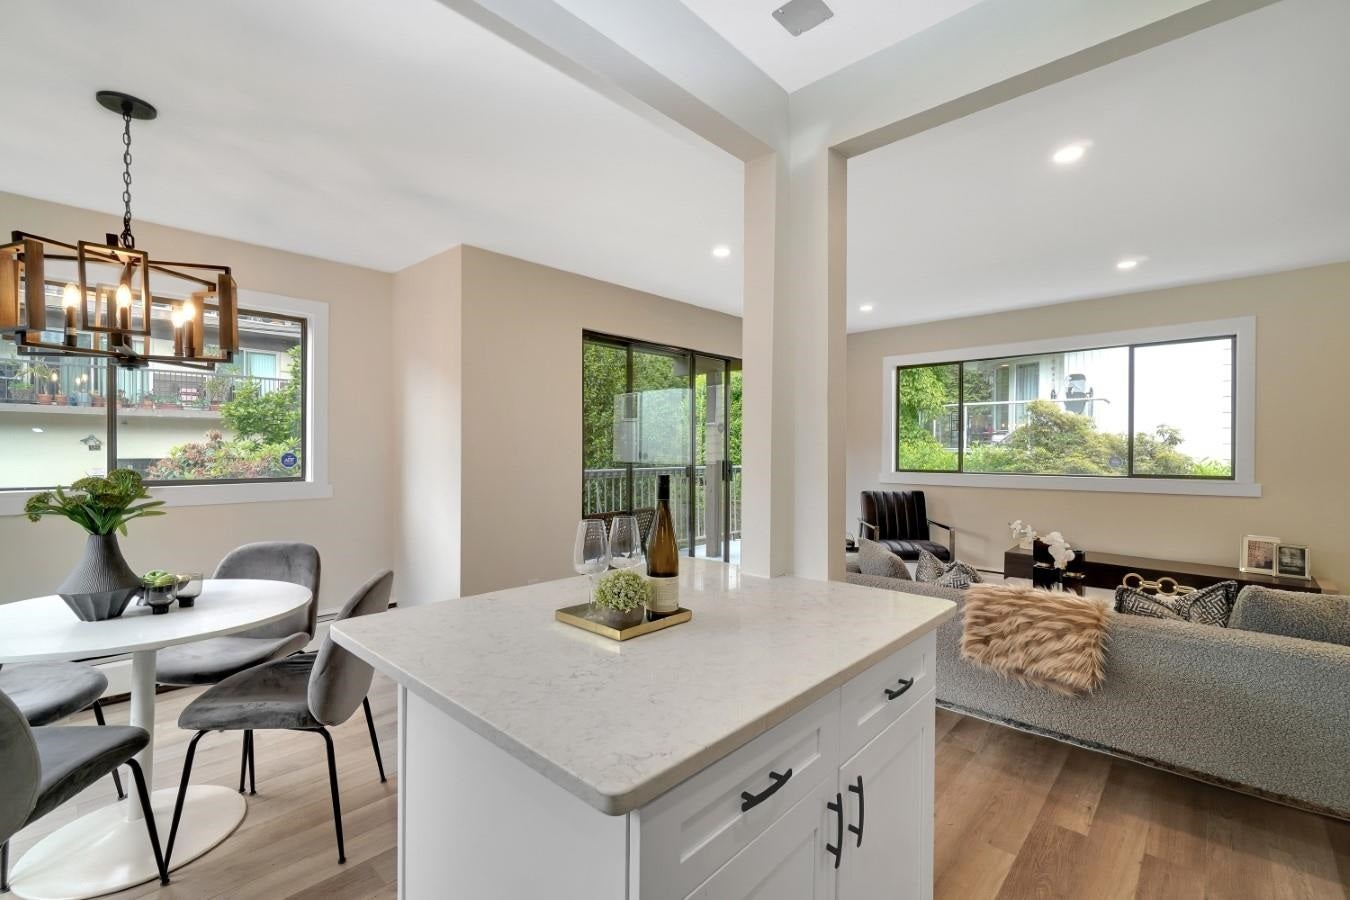 206 330 W 2ND STREET - Lower Lonsdale Apartment/Condo for sale, 2 Bedrooms (R2604160) - #5